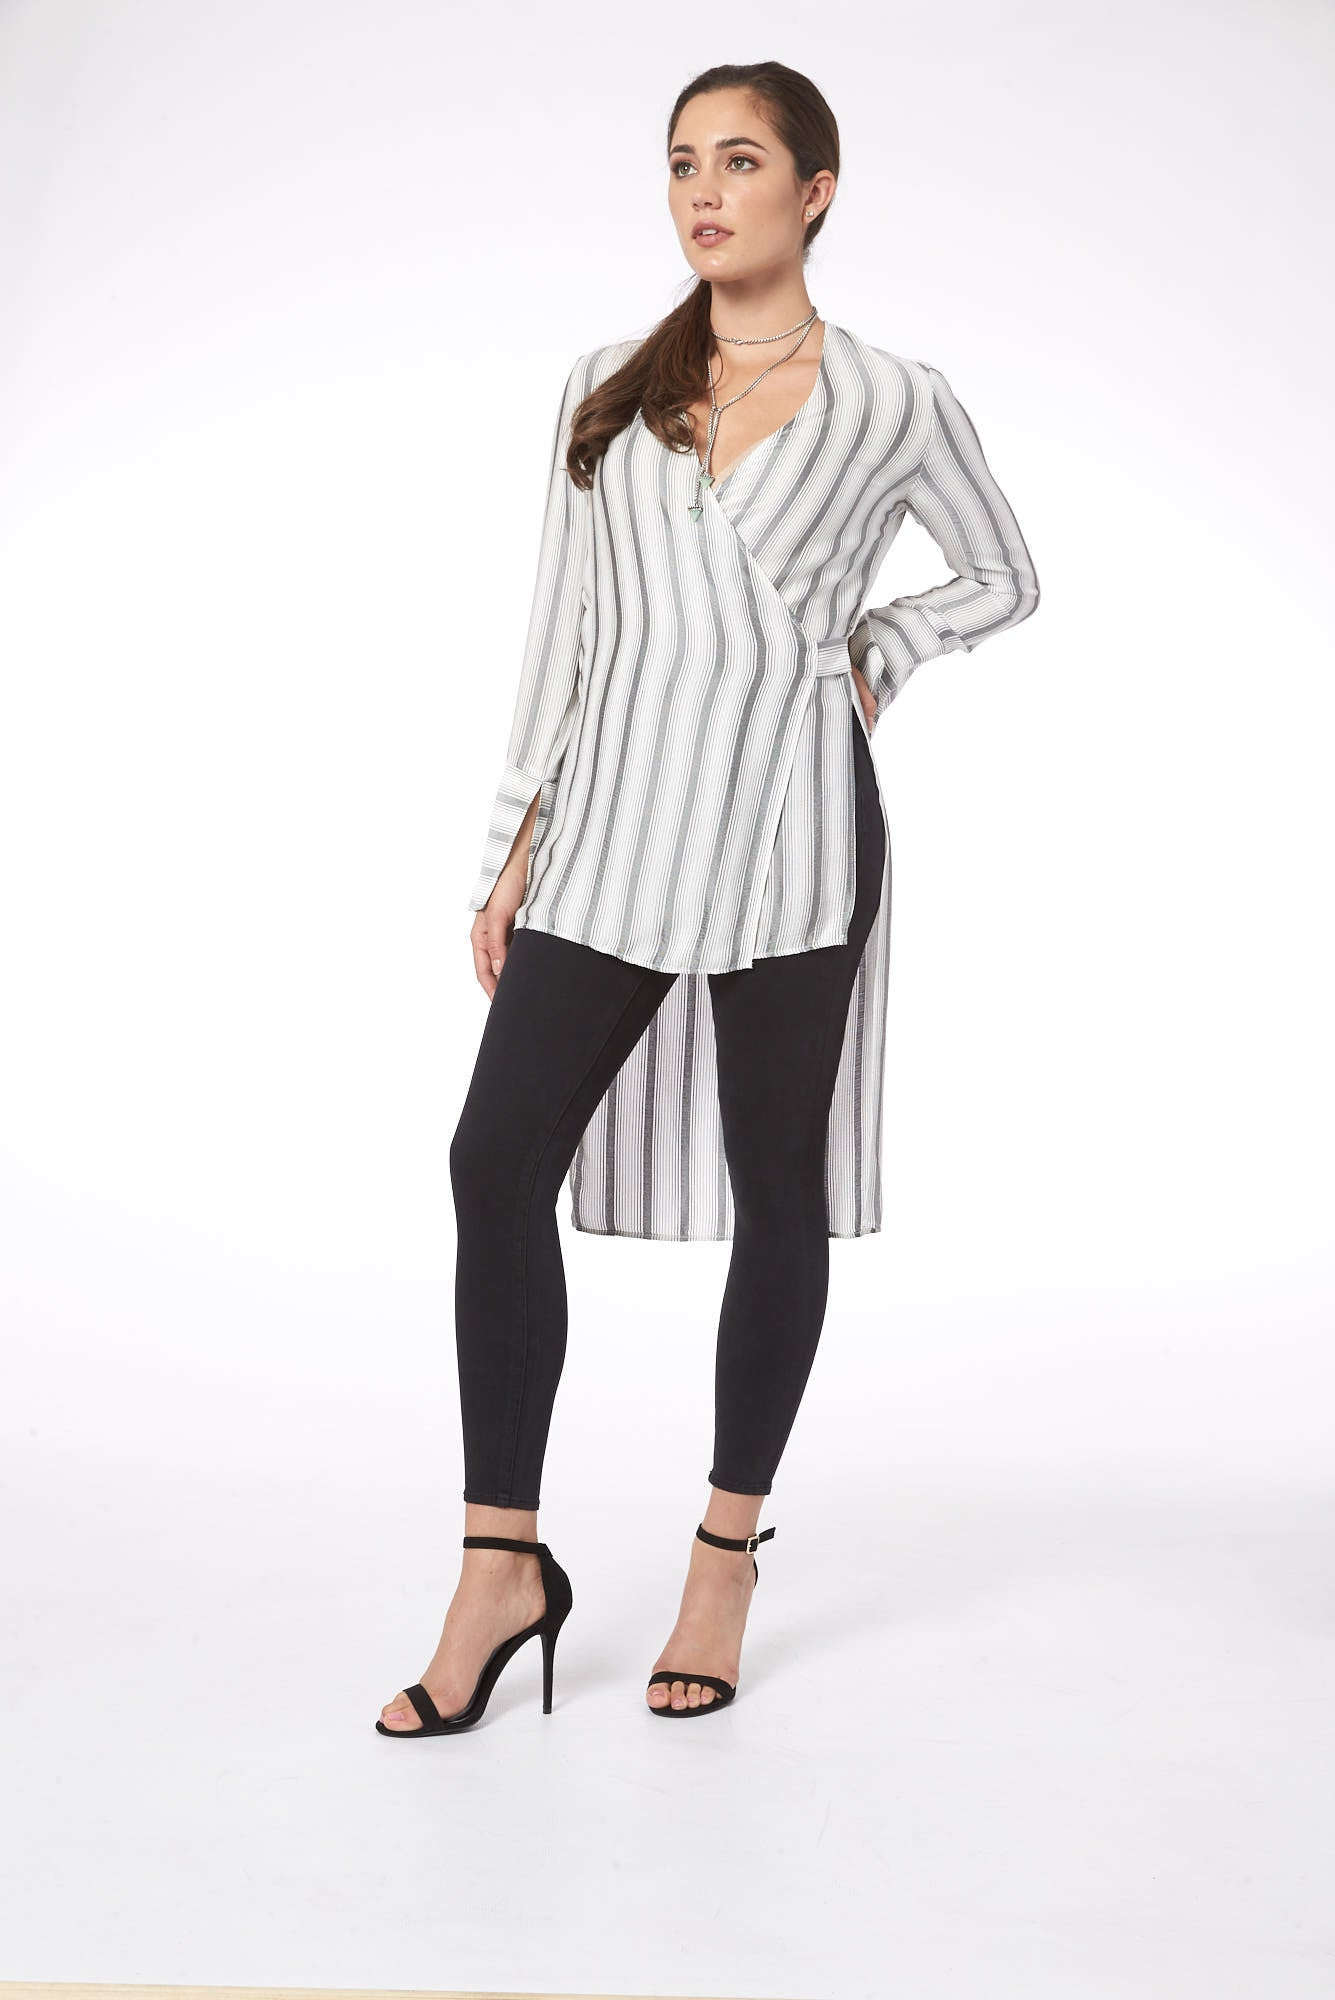 A Love for Stripes in Bristol Tunic